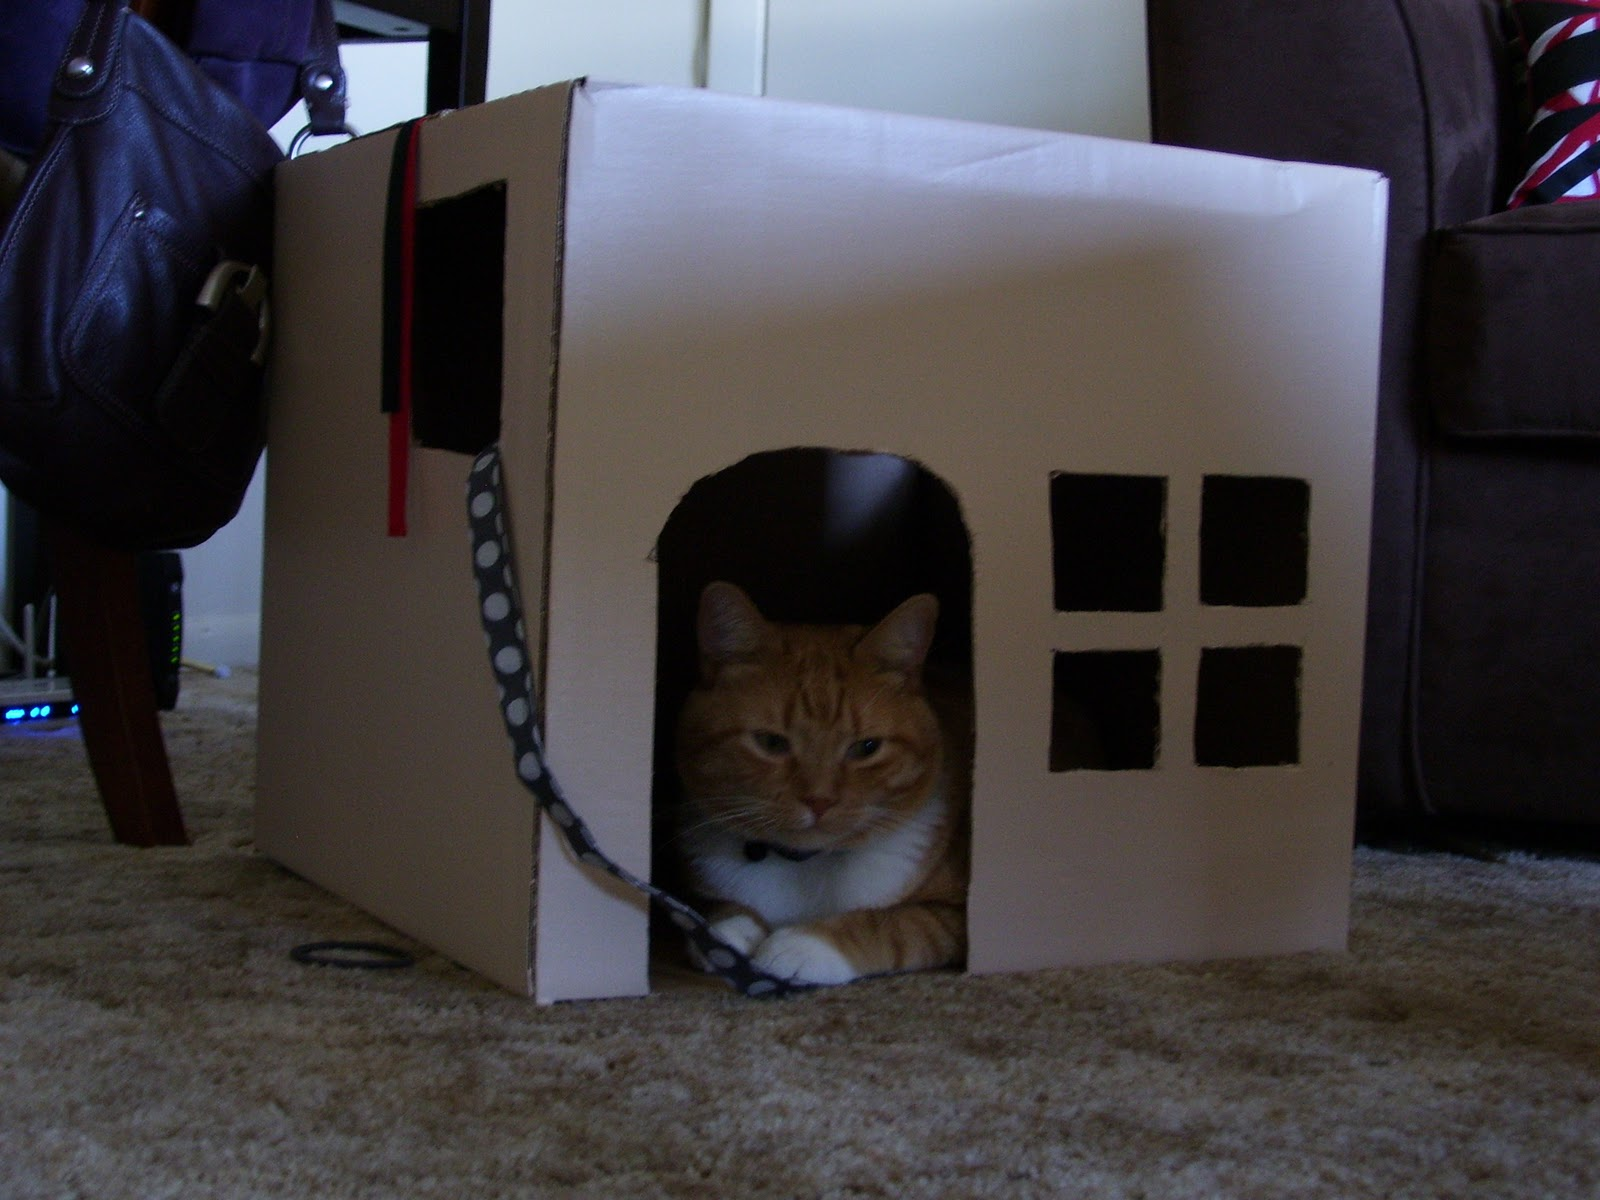 apartment to apartment cardboard cat house. Black Bedroom Furniture Sets. Home Design Ideas